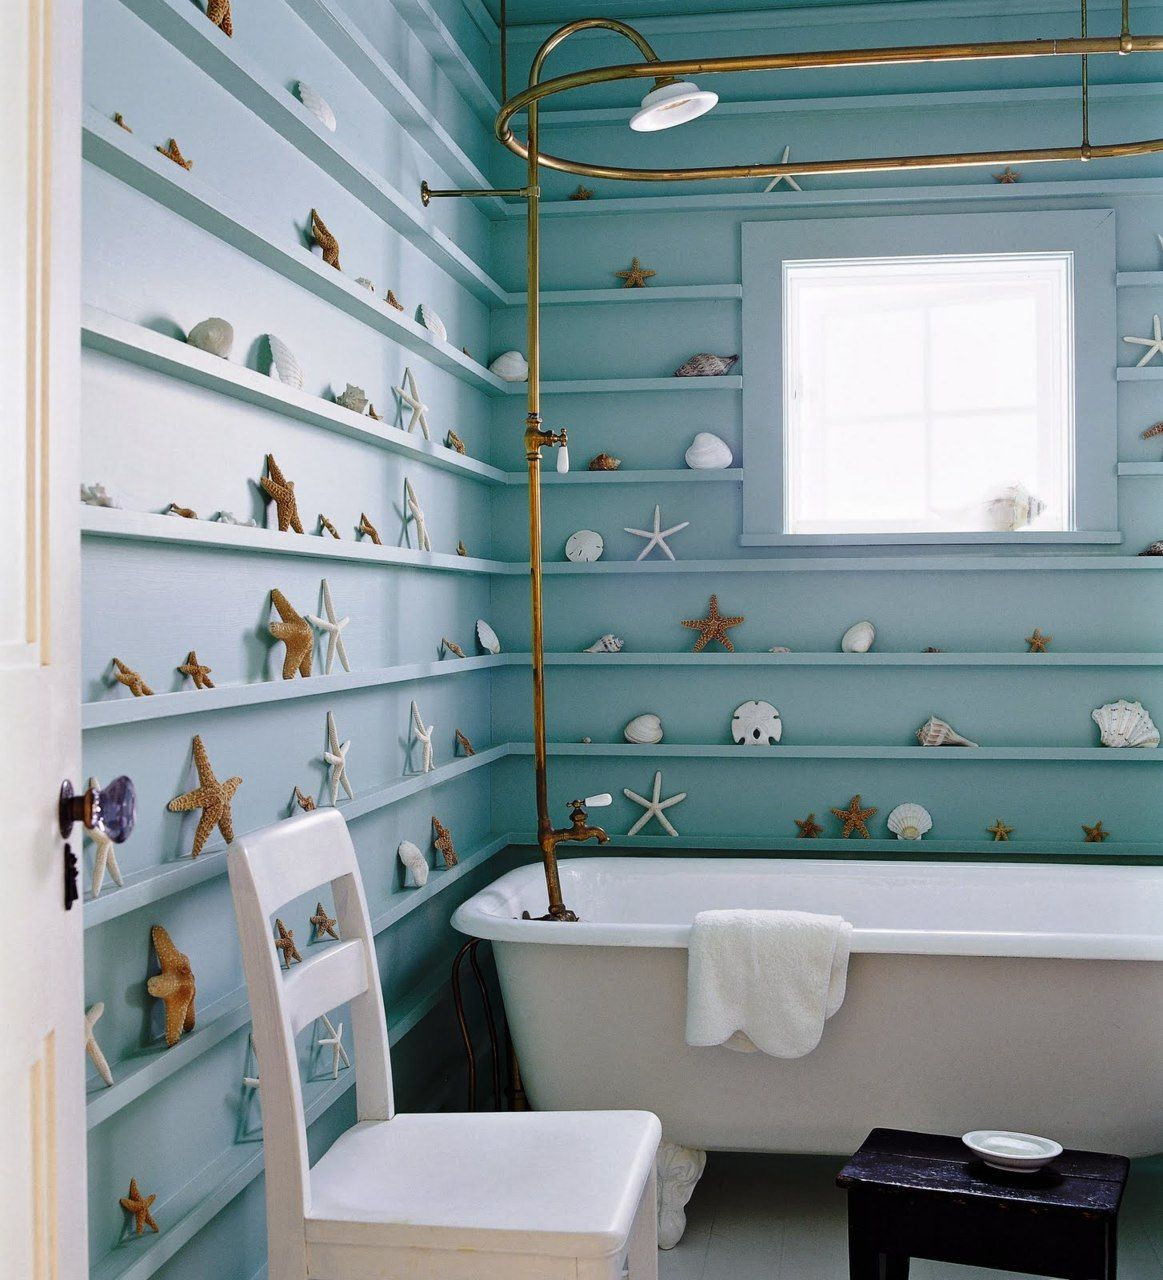 doesnt have to be starfish, or blue, but the shelves are cool ...